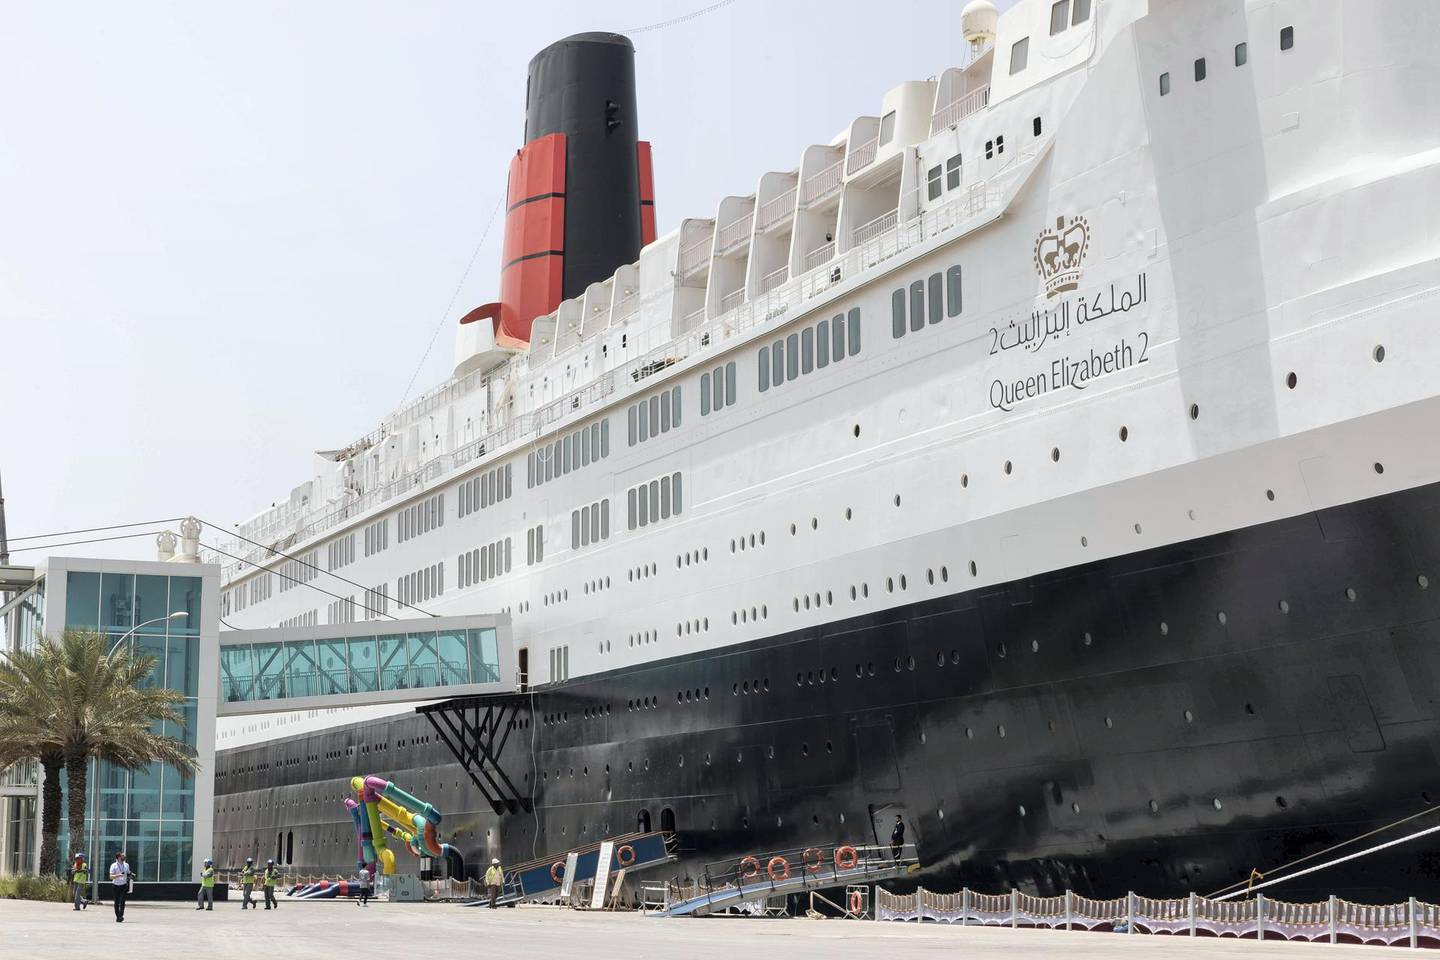 DUBAI, UNITED ARAB EMIRATES. 18 APRIL 2018. Press walk through of the Queen Elizabeth 2 in Port Rashid. The ship has been restored to it's former glory and is now taking guests. (Photo: Antonie Robertson/The National) Journalist: Johan Dennehy. Section: National.